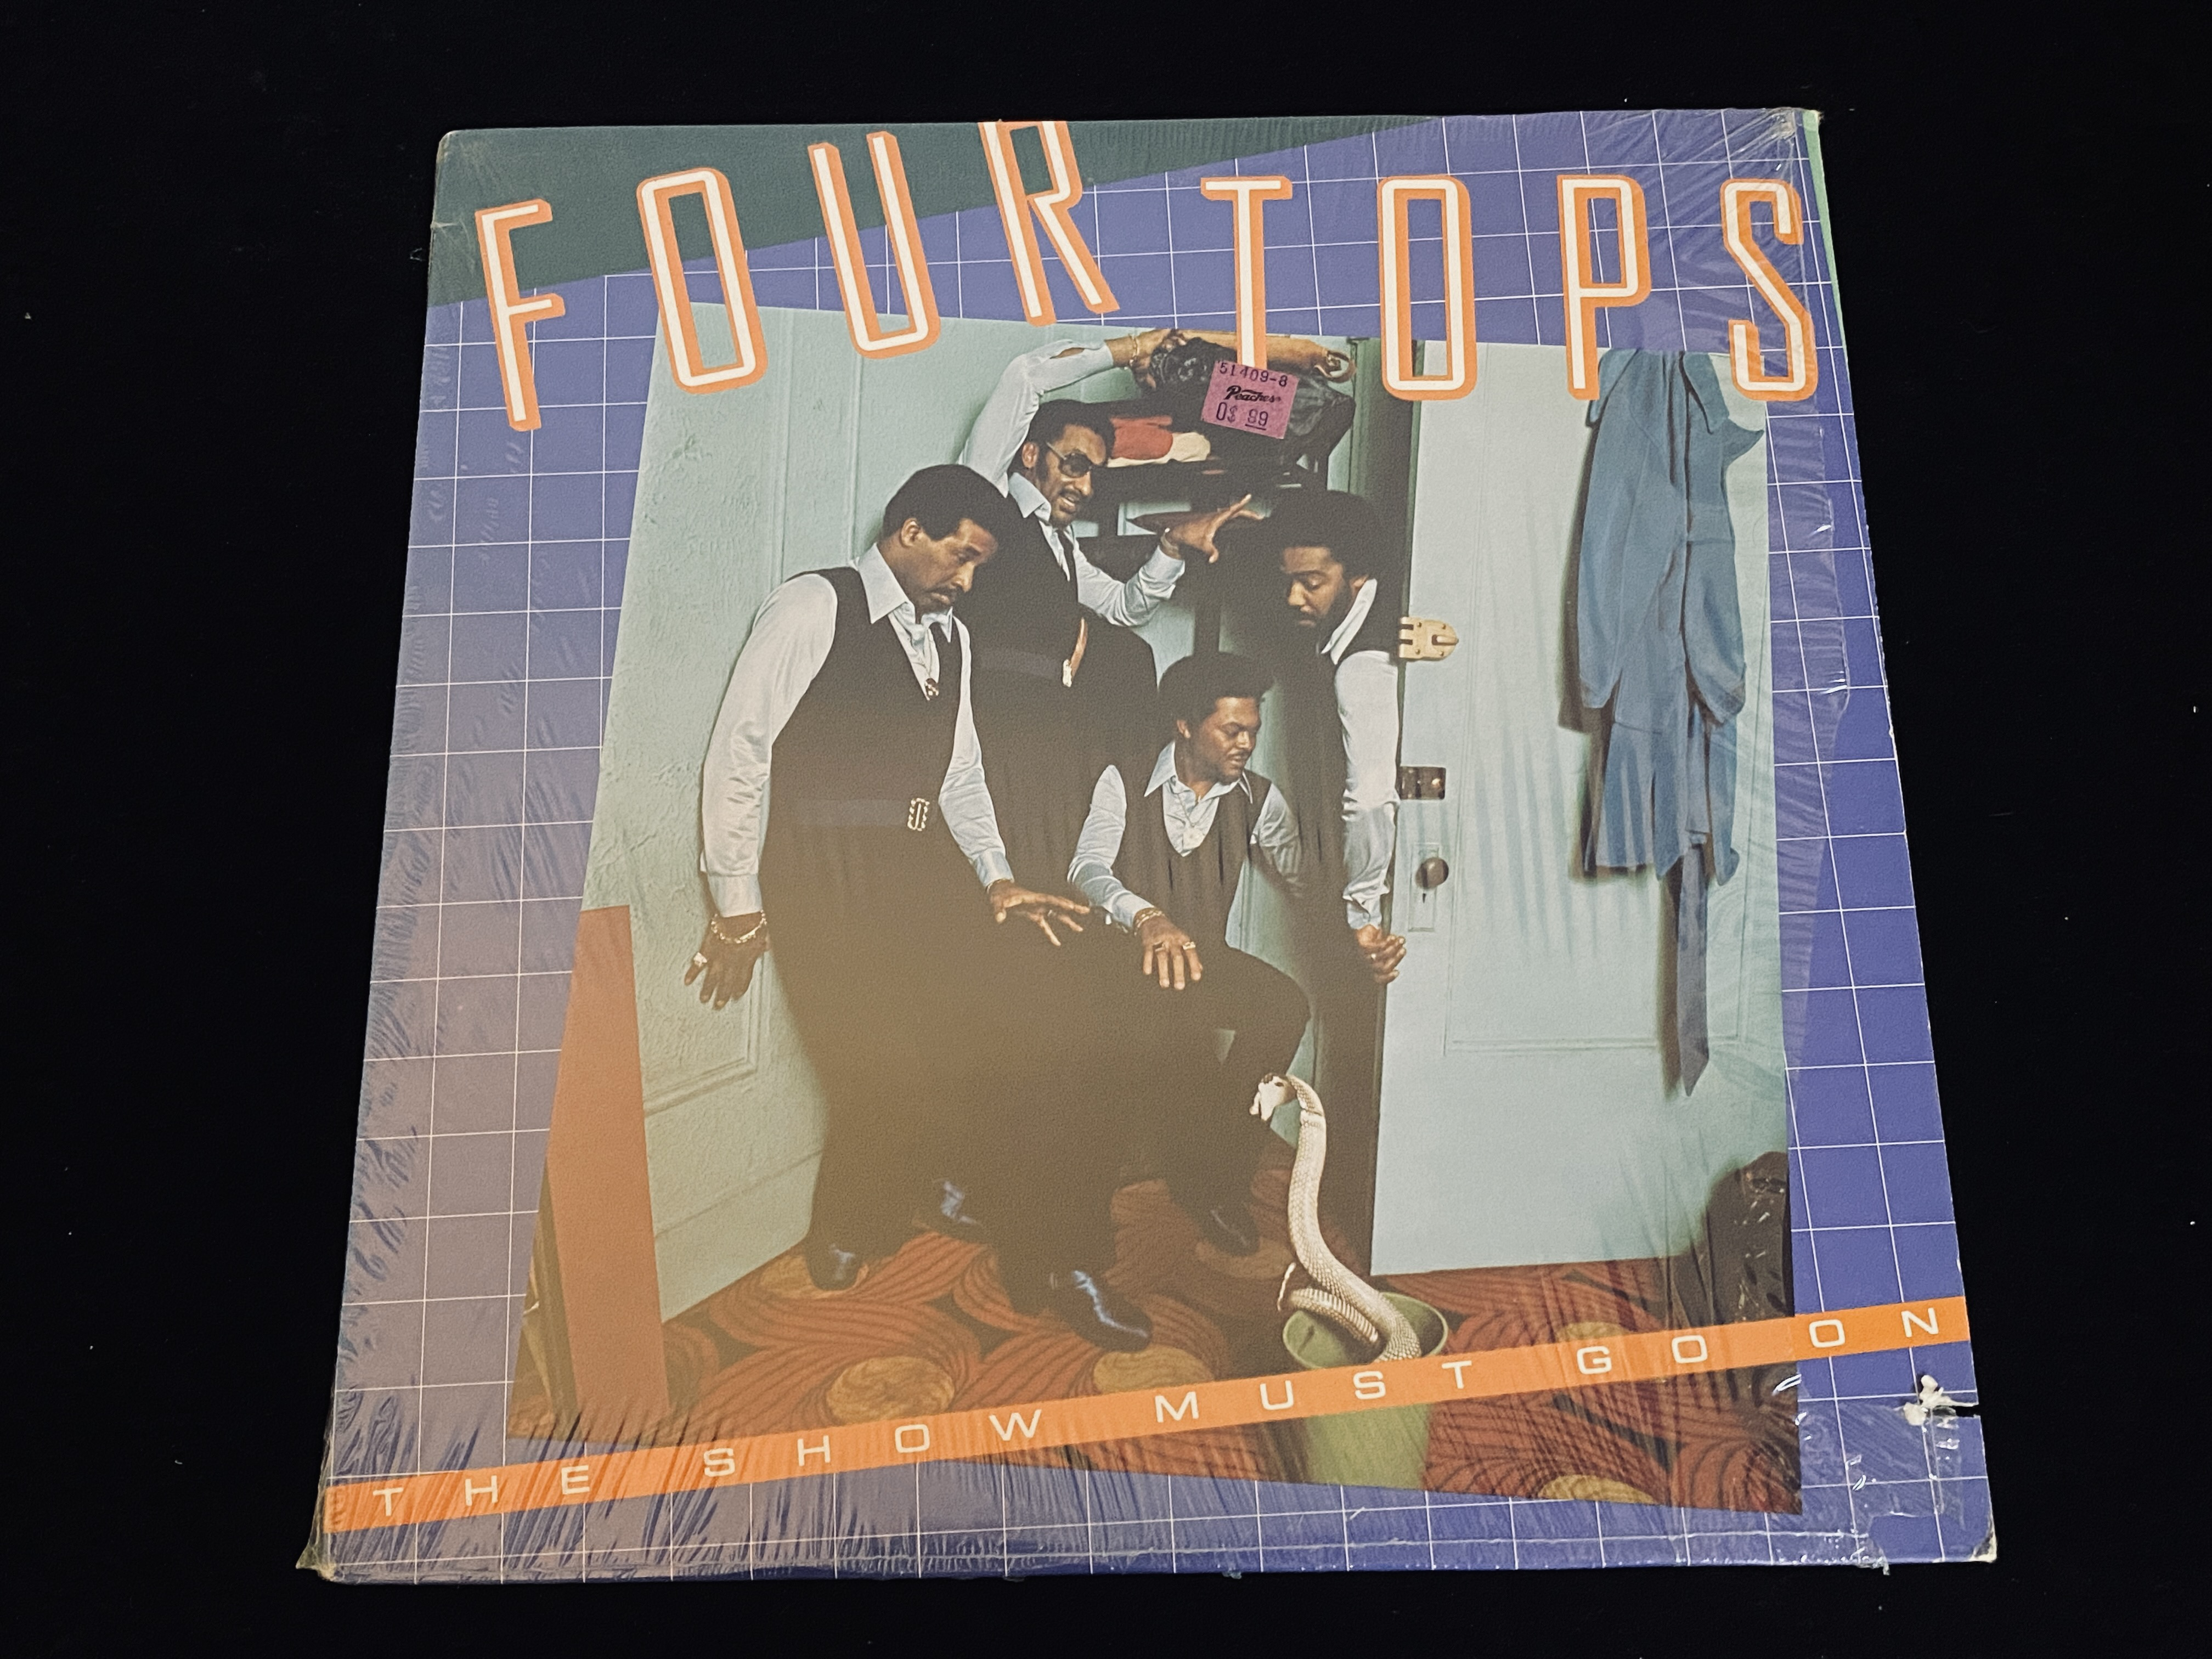 Four Tops - The Show must go on (US, 1977)